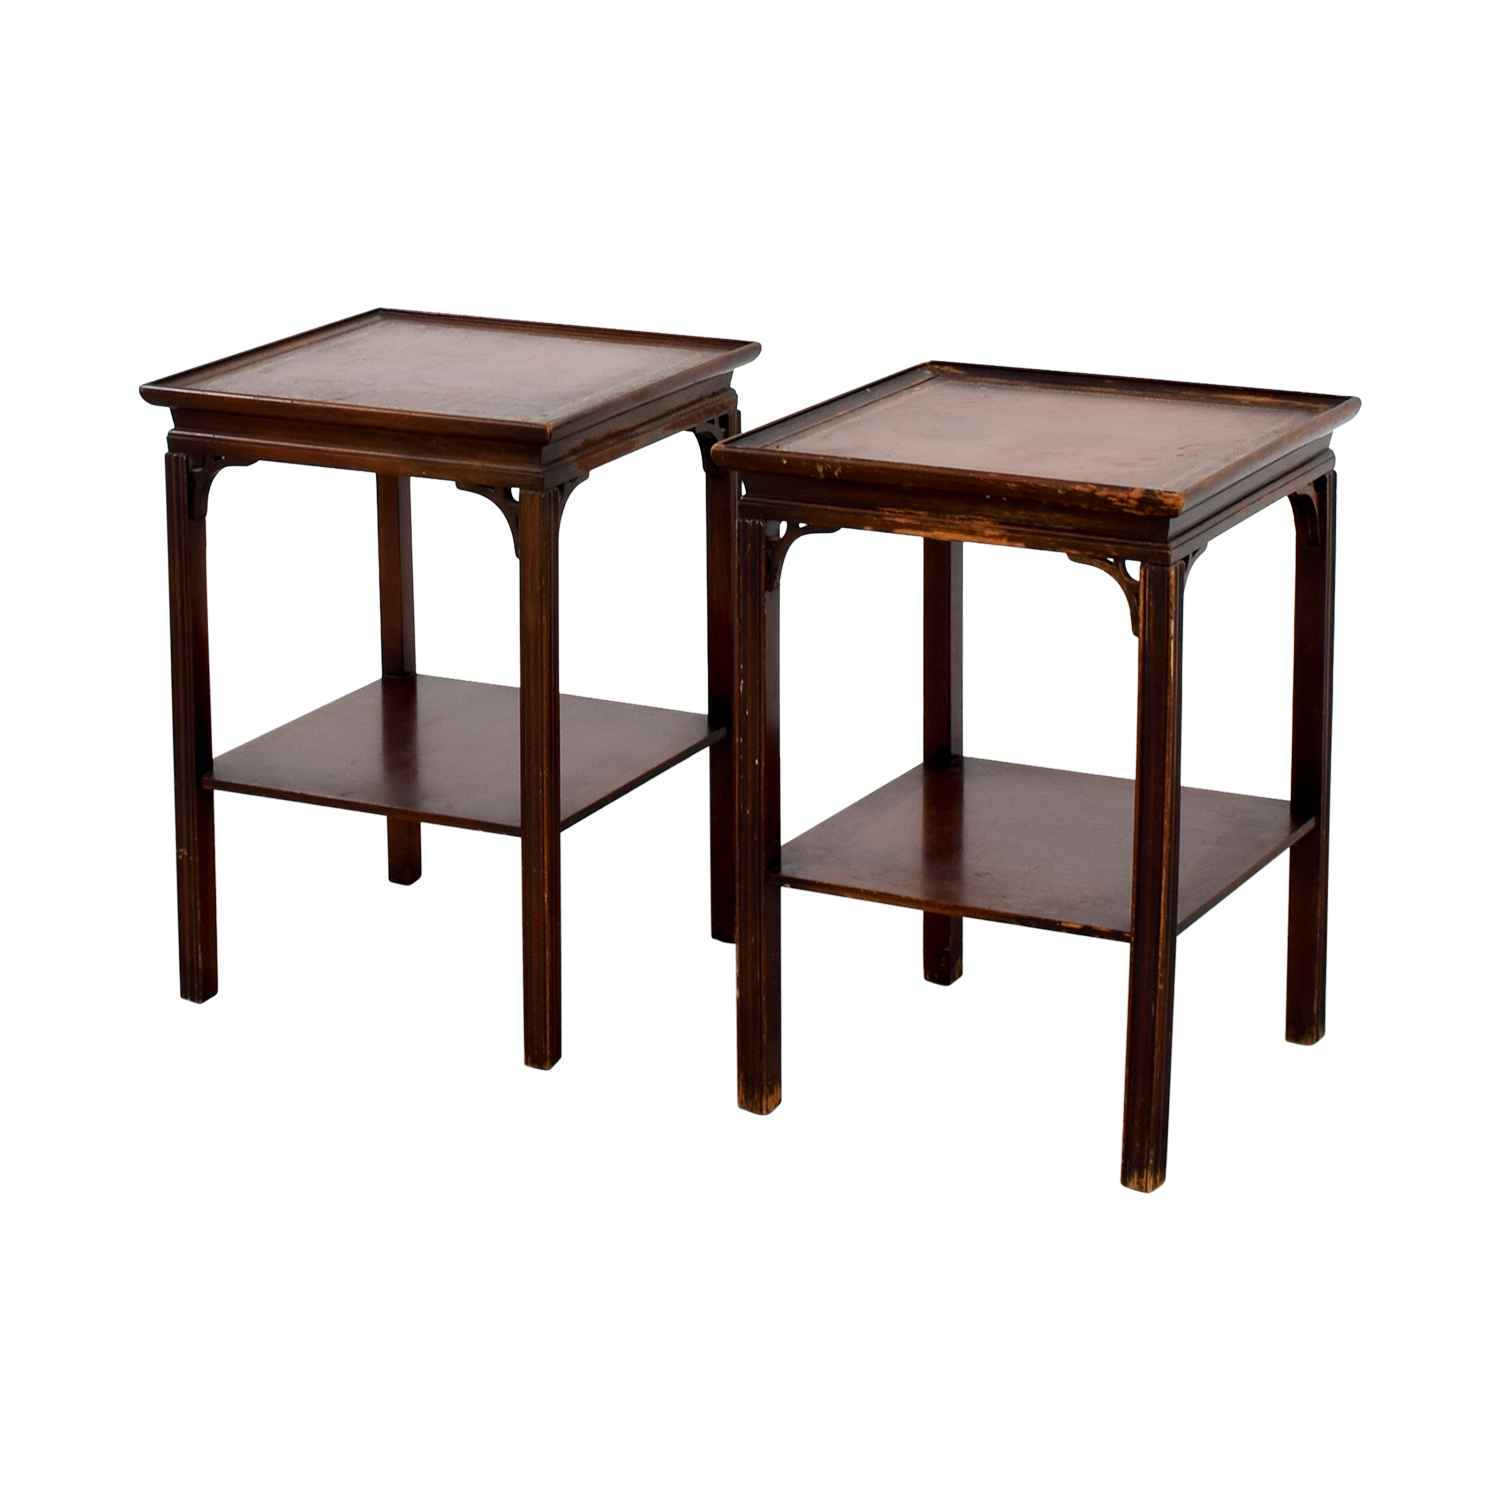 83 OFF Macys Macys Antique Leather Top End Tables Tables